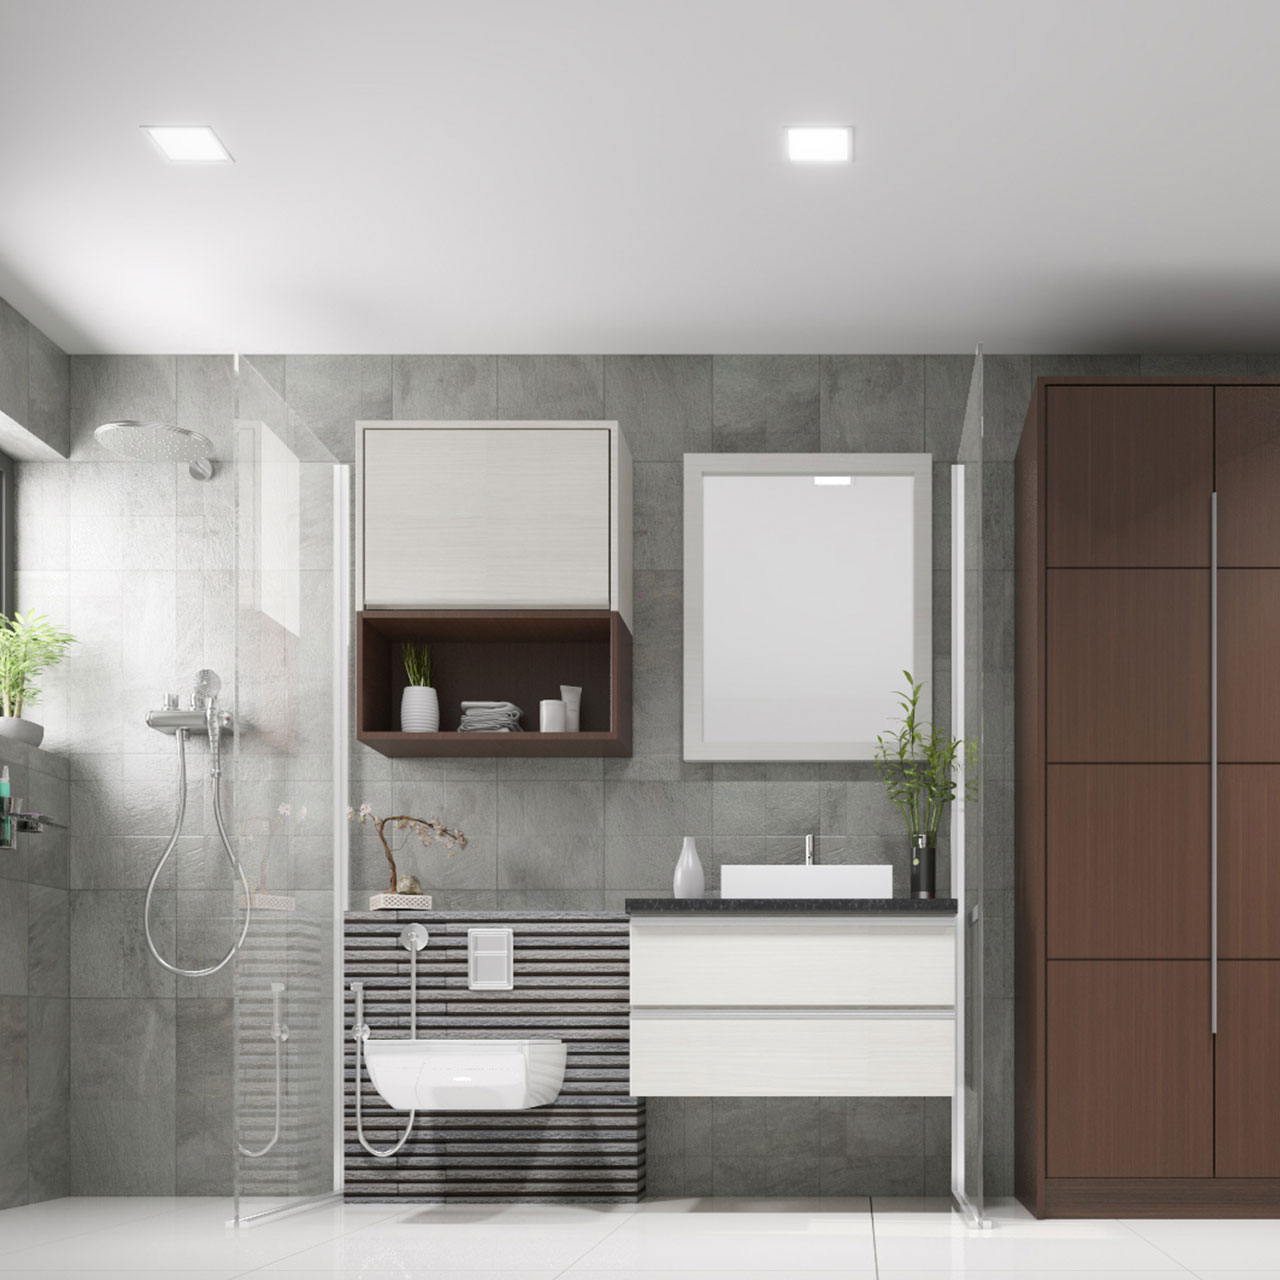 Large Bathrooms in Villa House